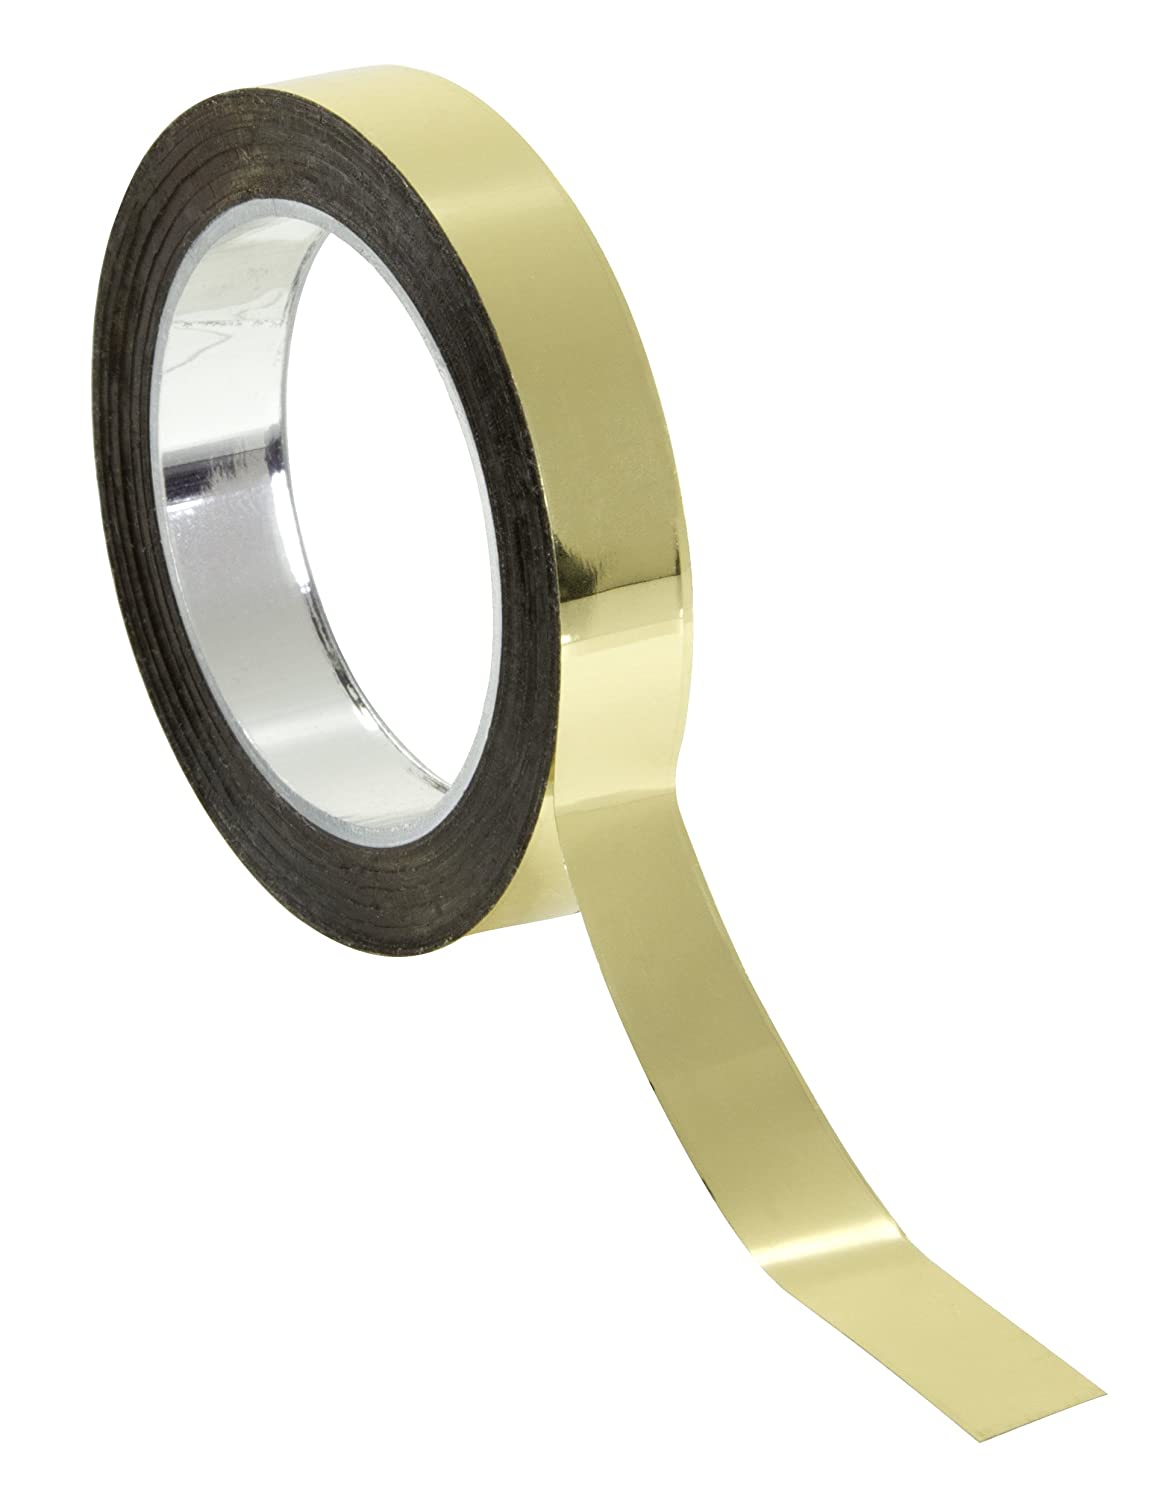 Chartpak Graphic Art Tape, 1/4 Inch W x 324 Inch L, Gold Mylar Metallic, 1 Roll (BG2509)